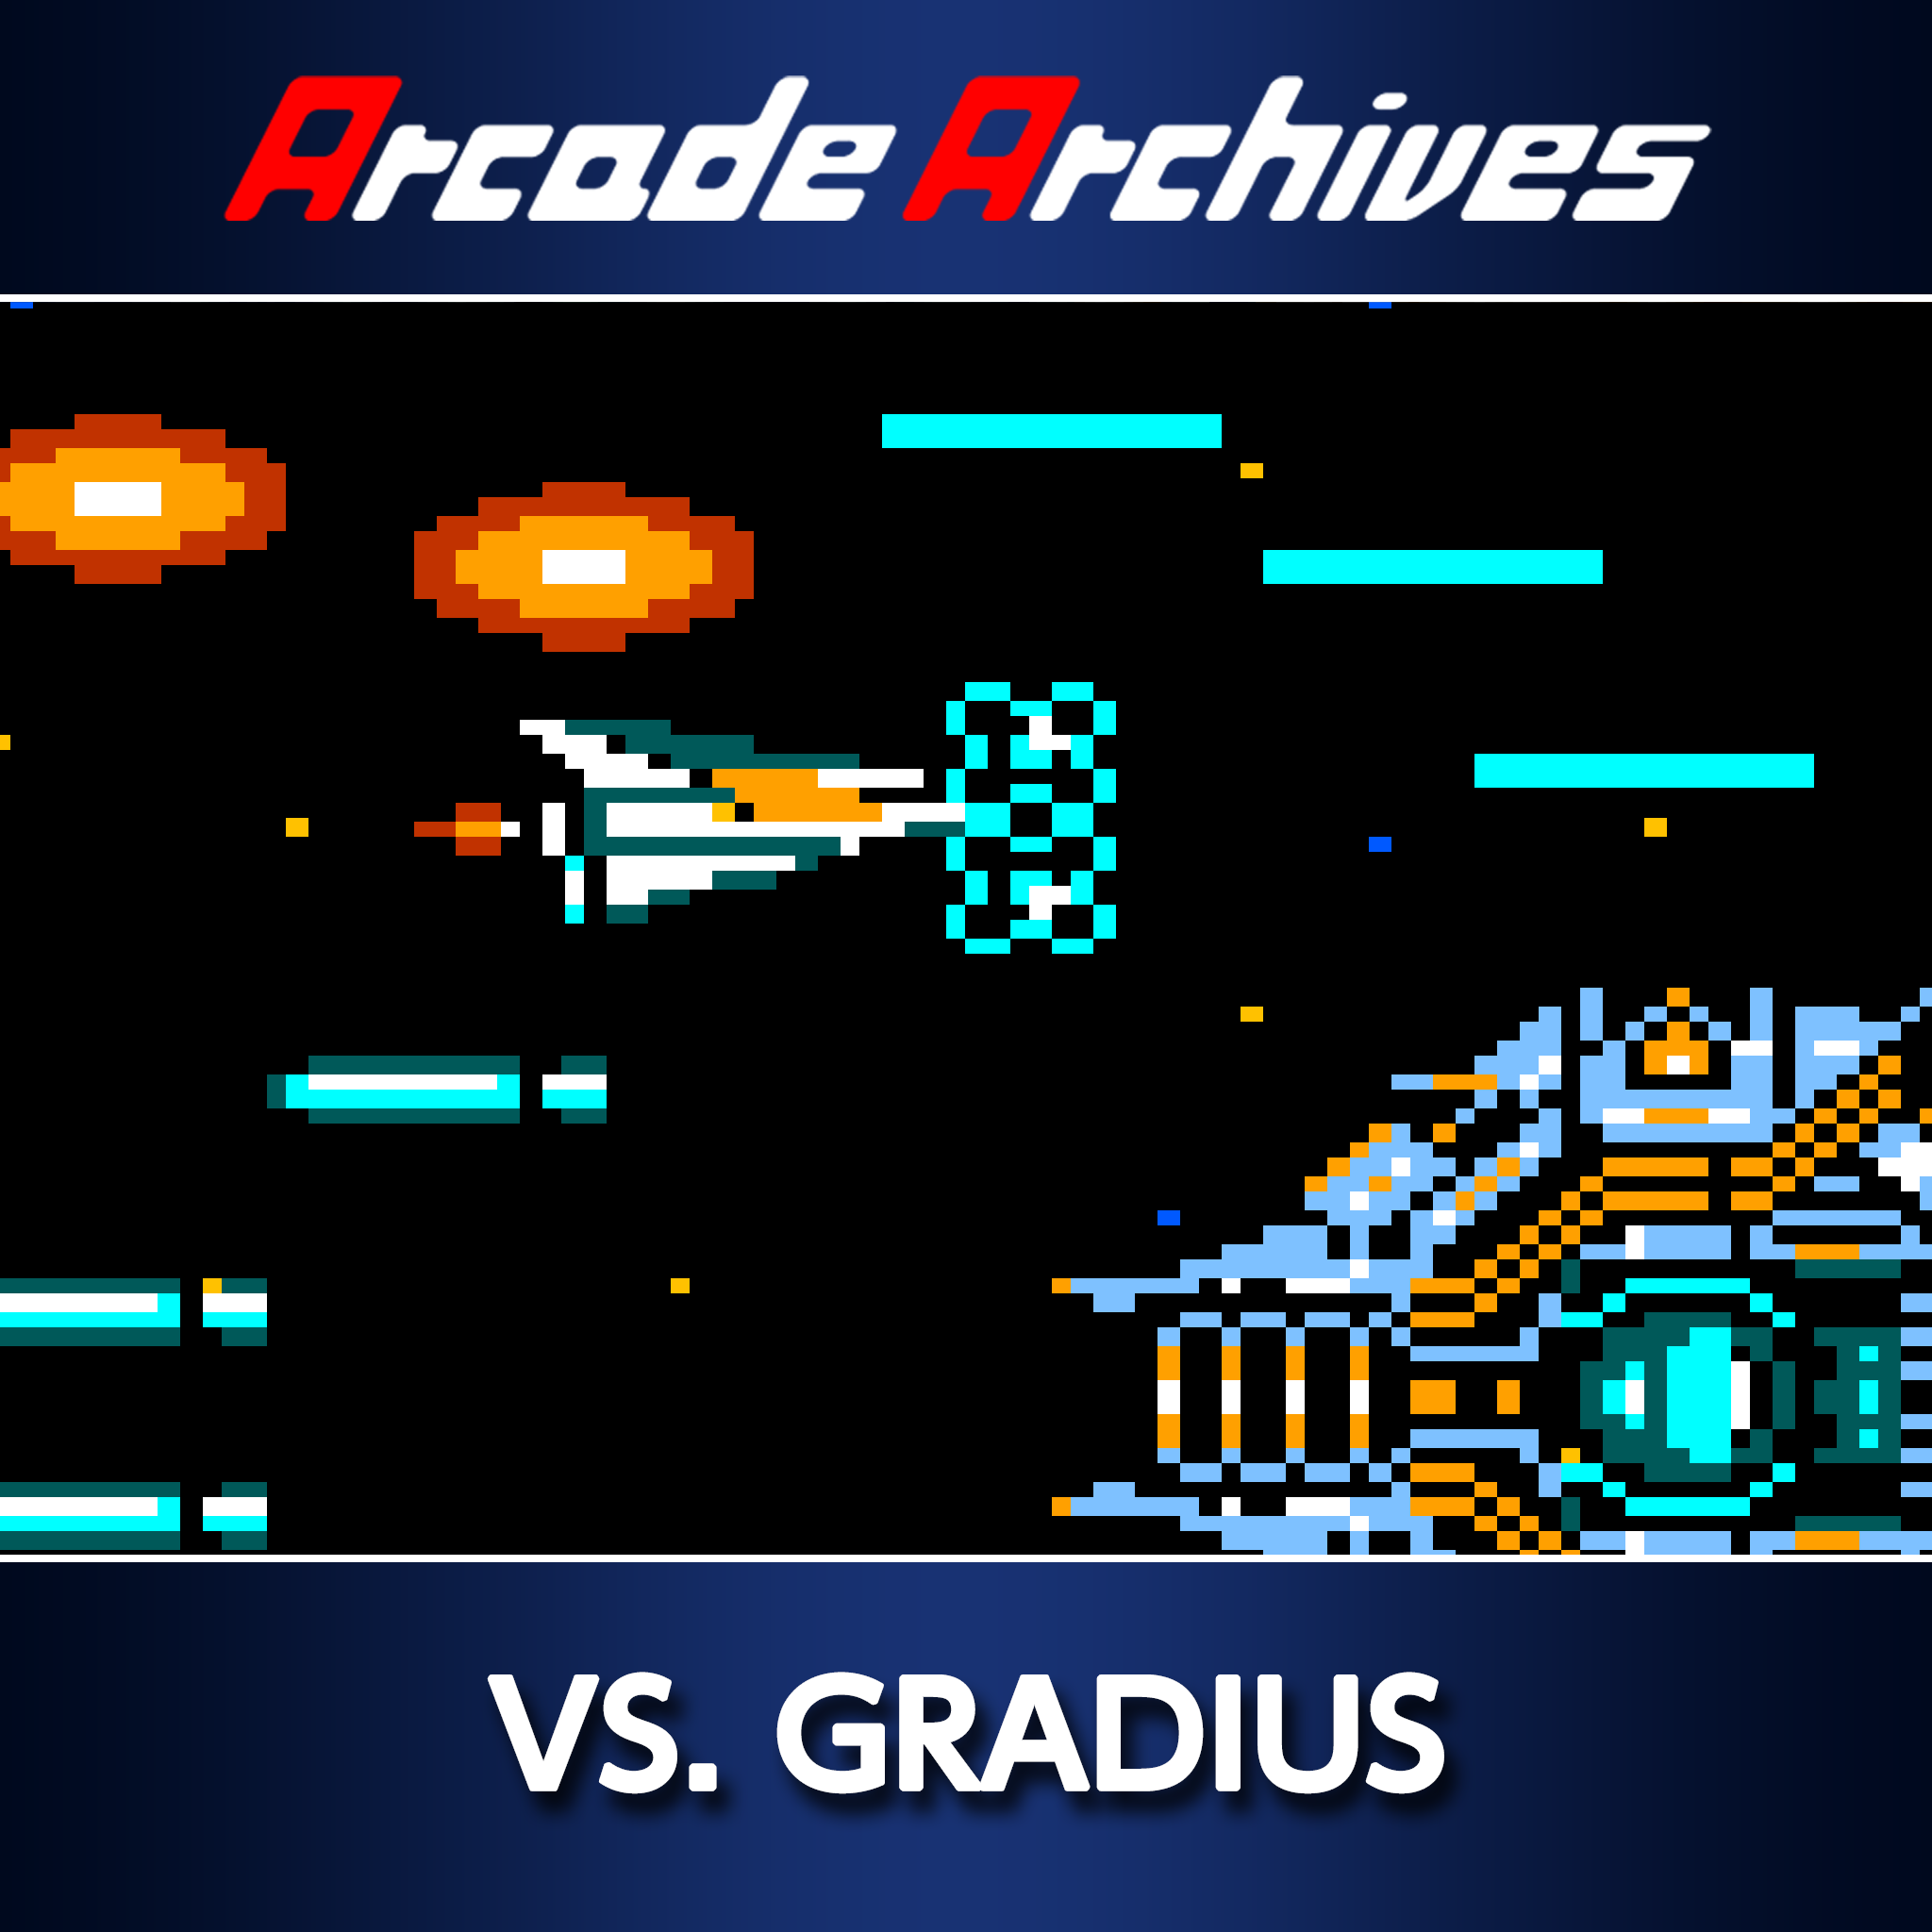 Thumbnail of Arcade Archives VS. GRADIUS on PS4